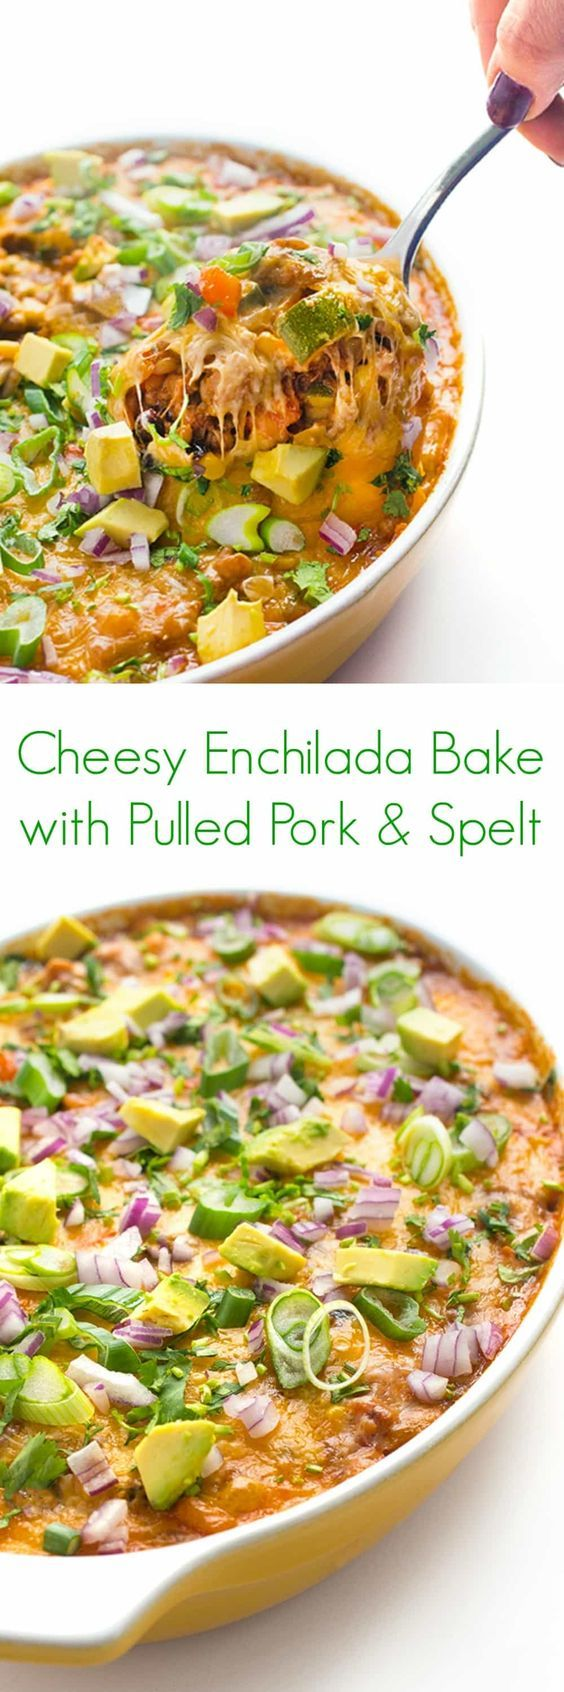 Better Home And Gardens Recipes Australia - Cheesy enchilada bake with pulled pork and spelt recipe an easy healthy dinner that